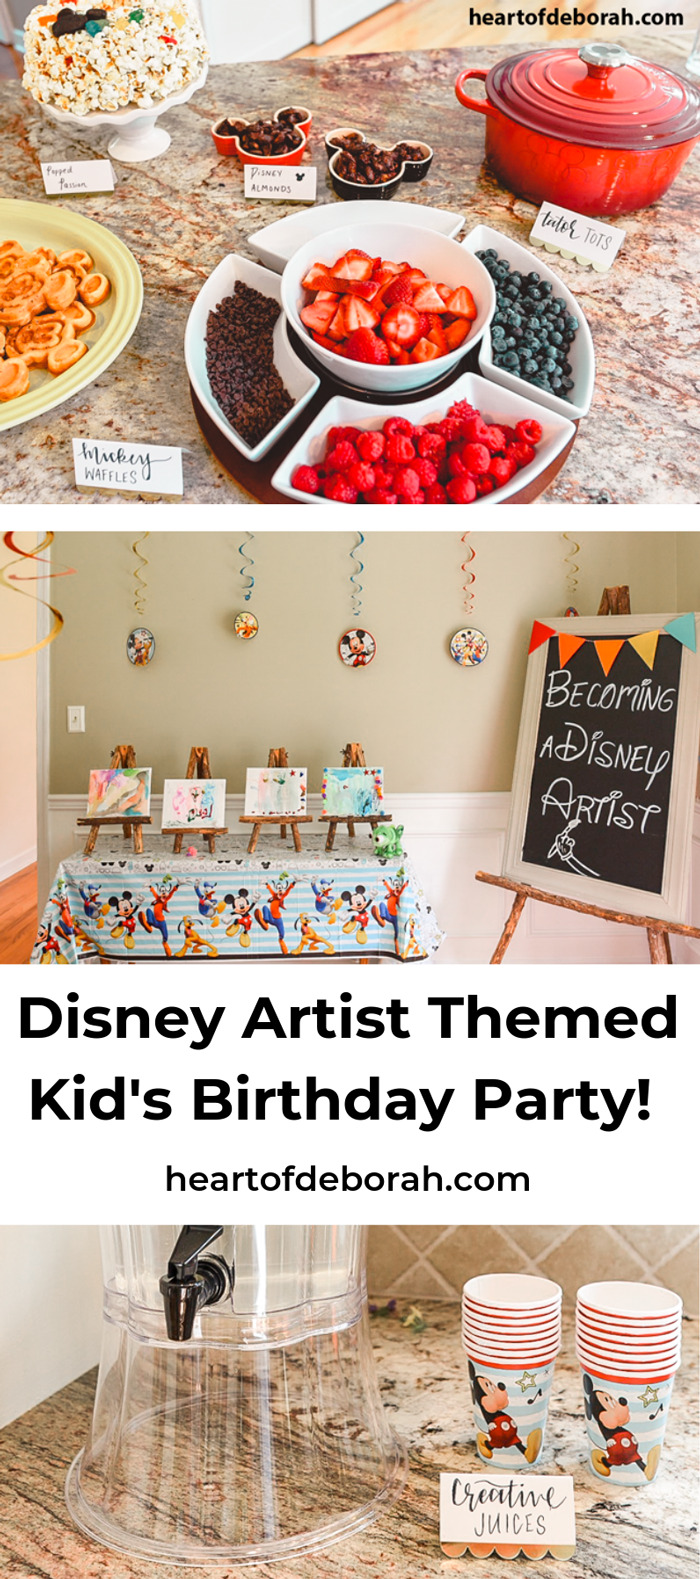 Throwing a Disney party? Check out this adorable kid's birthday party with a Mickey waffle bar!